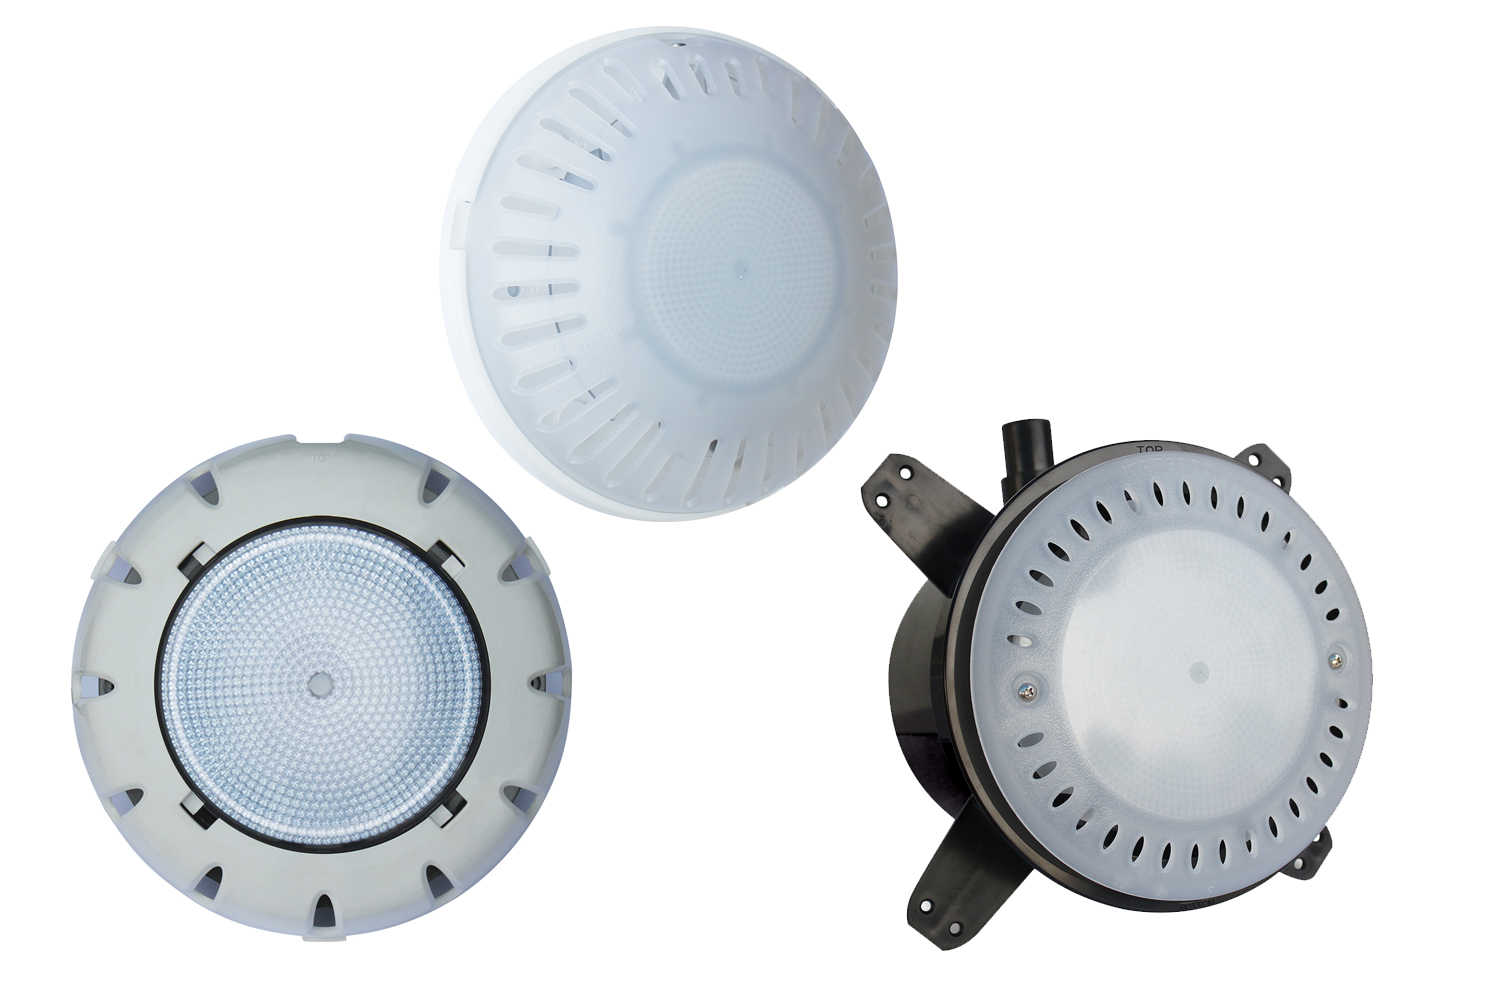 Brighten up your pool with the right kind of pool lighting